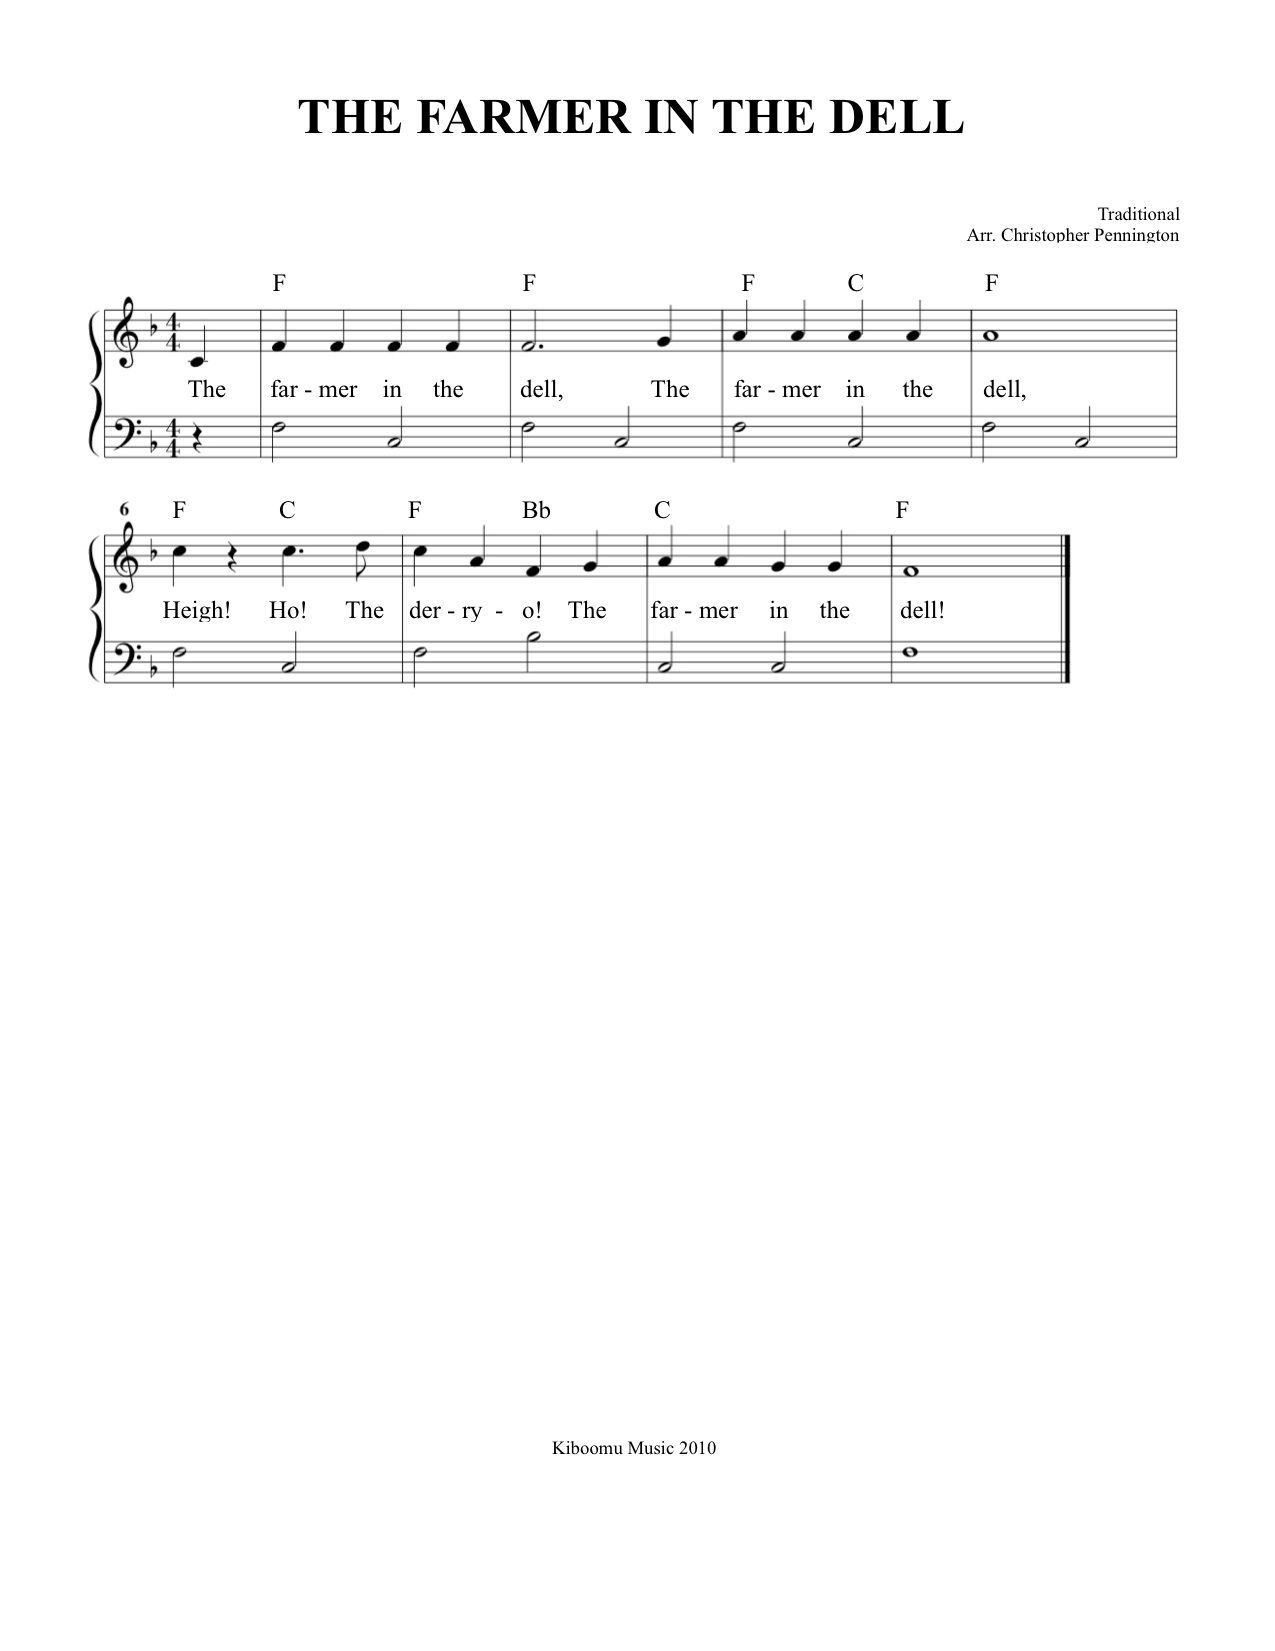 The Farmer In The Dell Sheet Music | Music To Sleep To | Music - Free Printable Sheet Music Lyrics